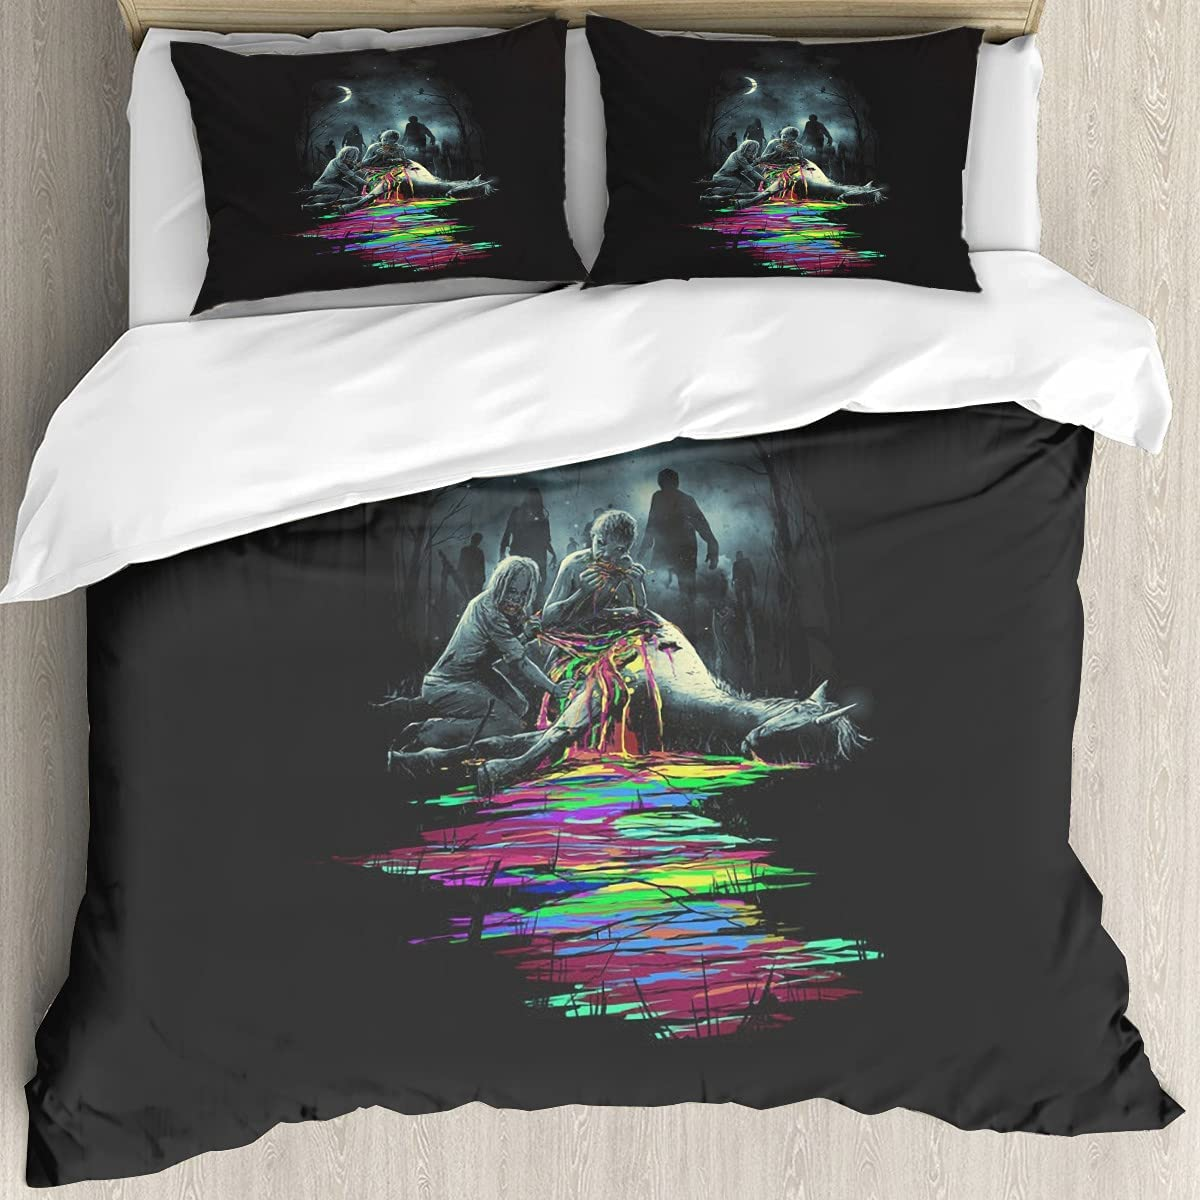 Midnight Snack 3D Printing Cheap sale Cover Twin Set Super intense SALE Breat Soft and Bedding